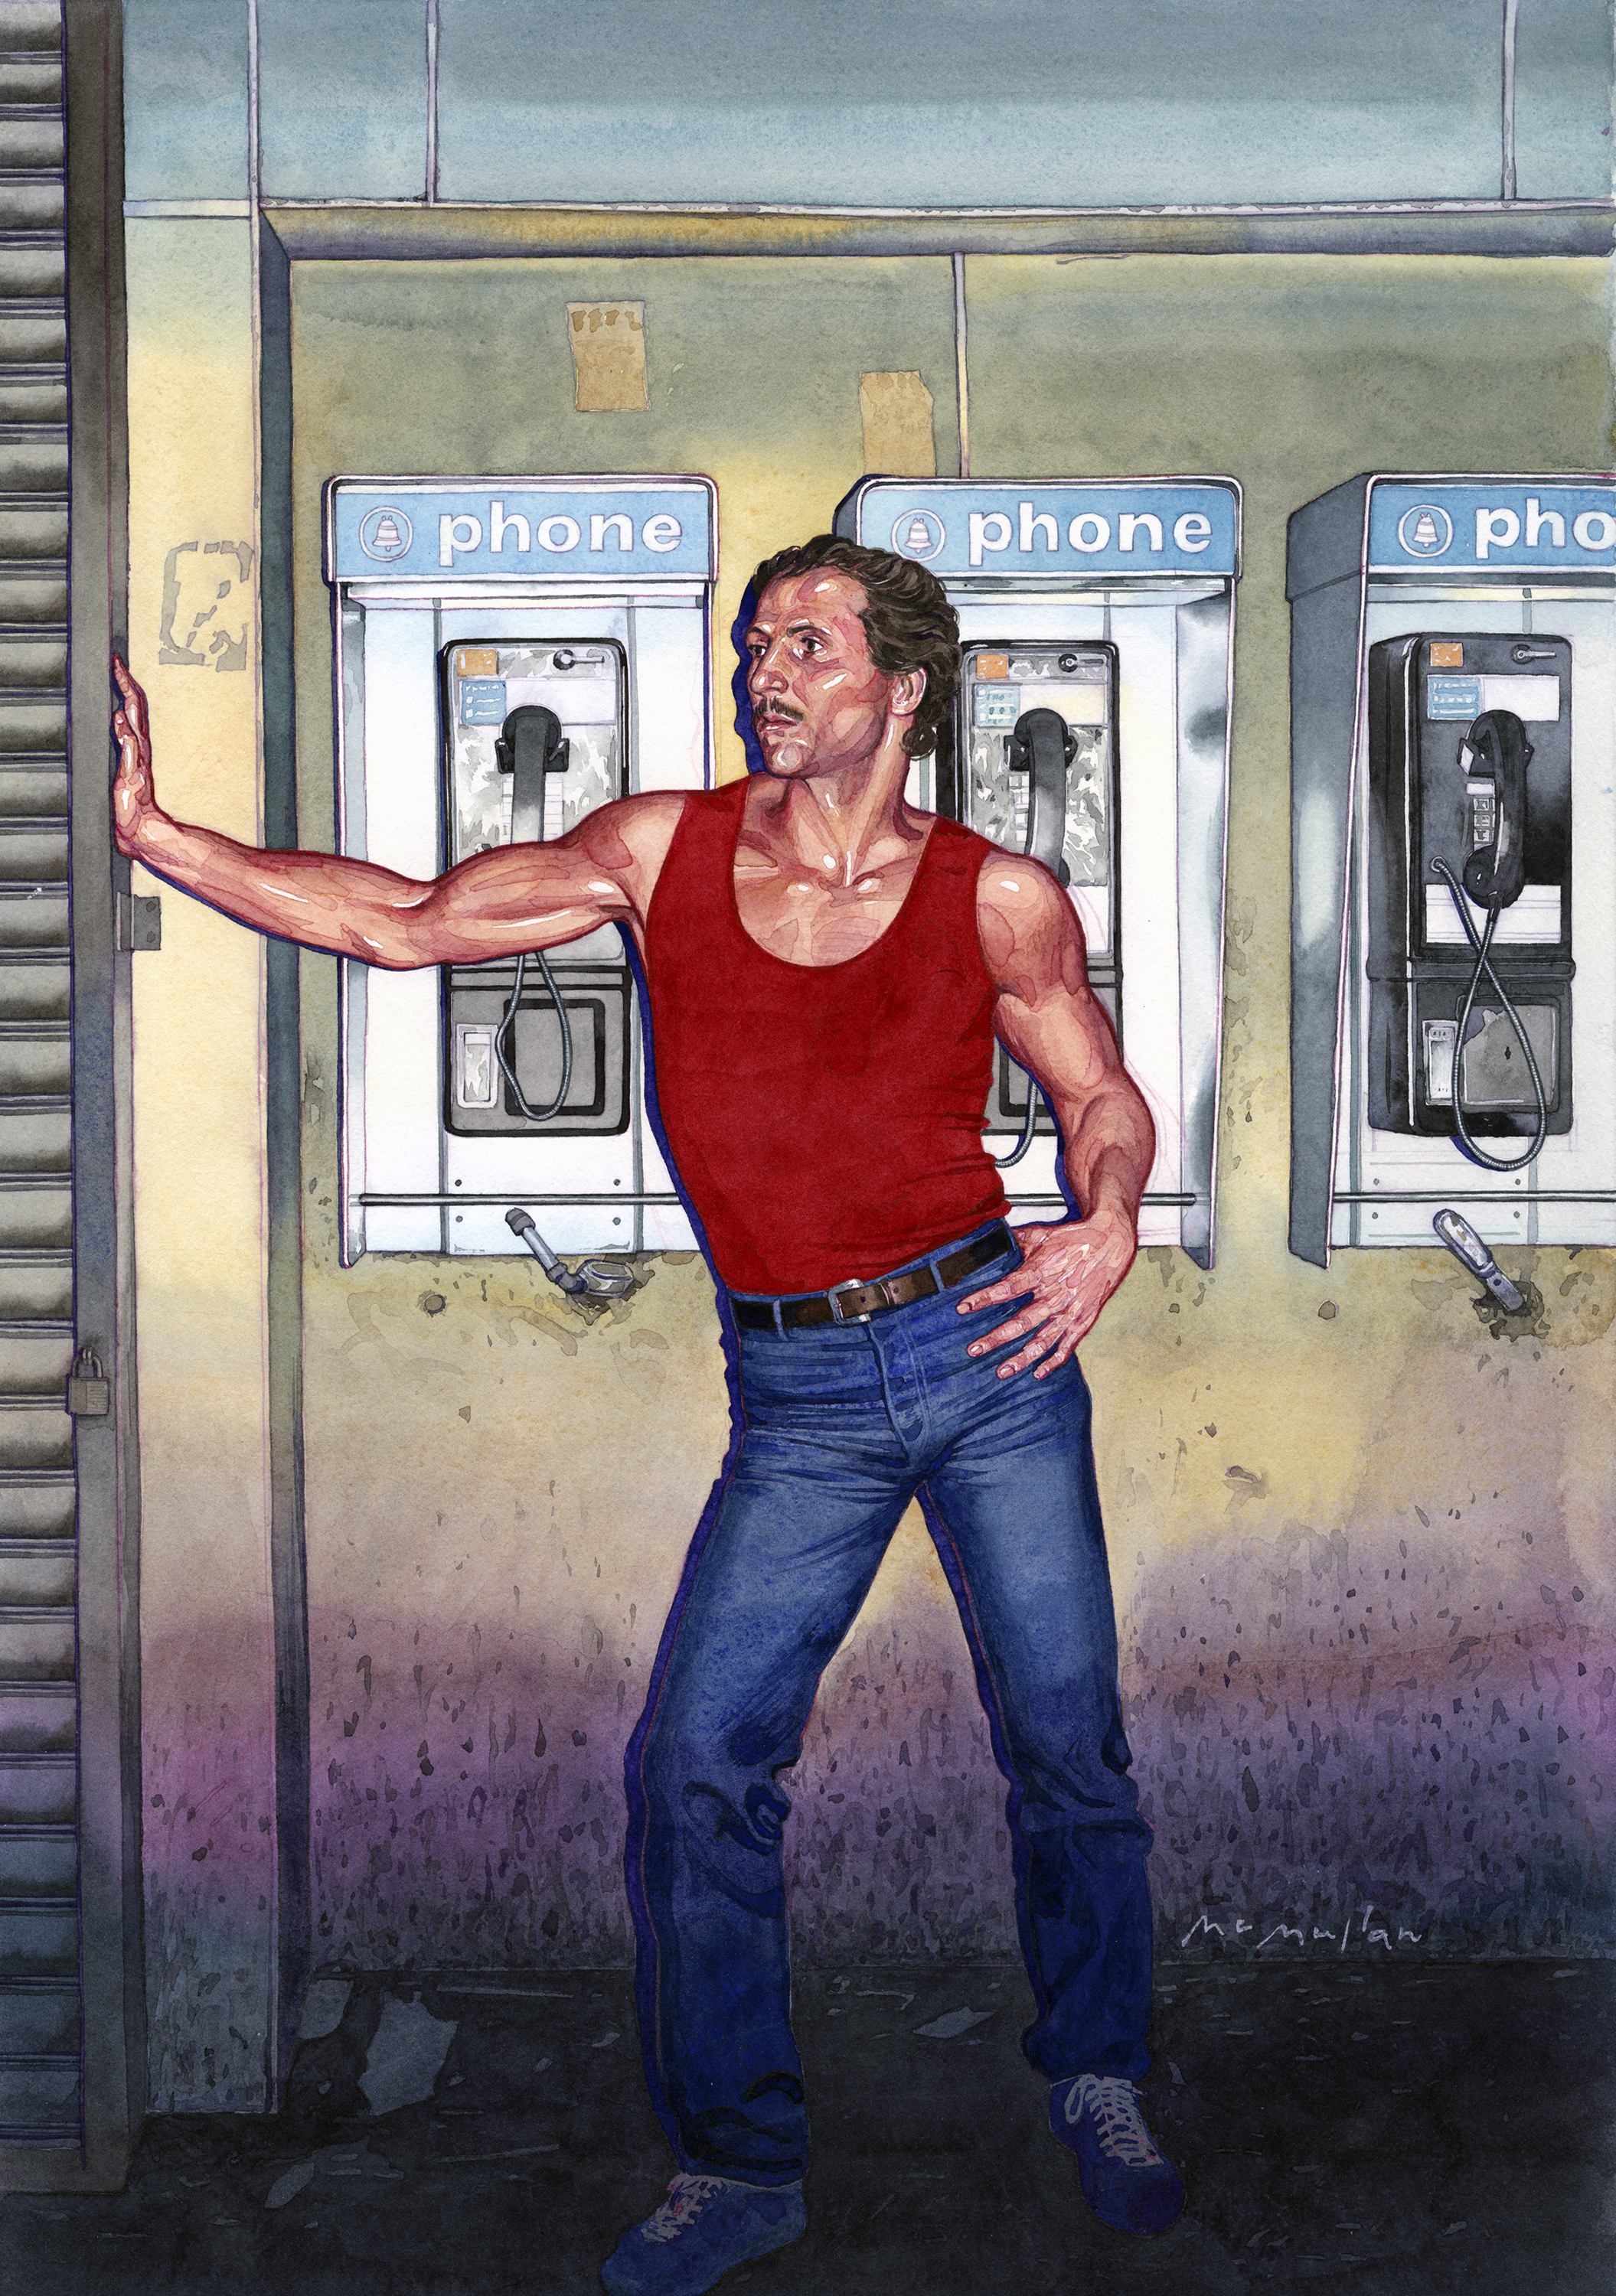 Watercolor illustration of a muscular man in a red tank top and jeans with his hand leaning on a closed shutter, against a backdrop of public phones.